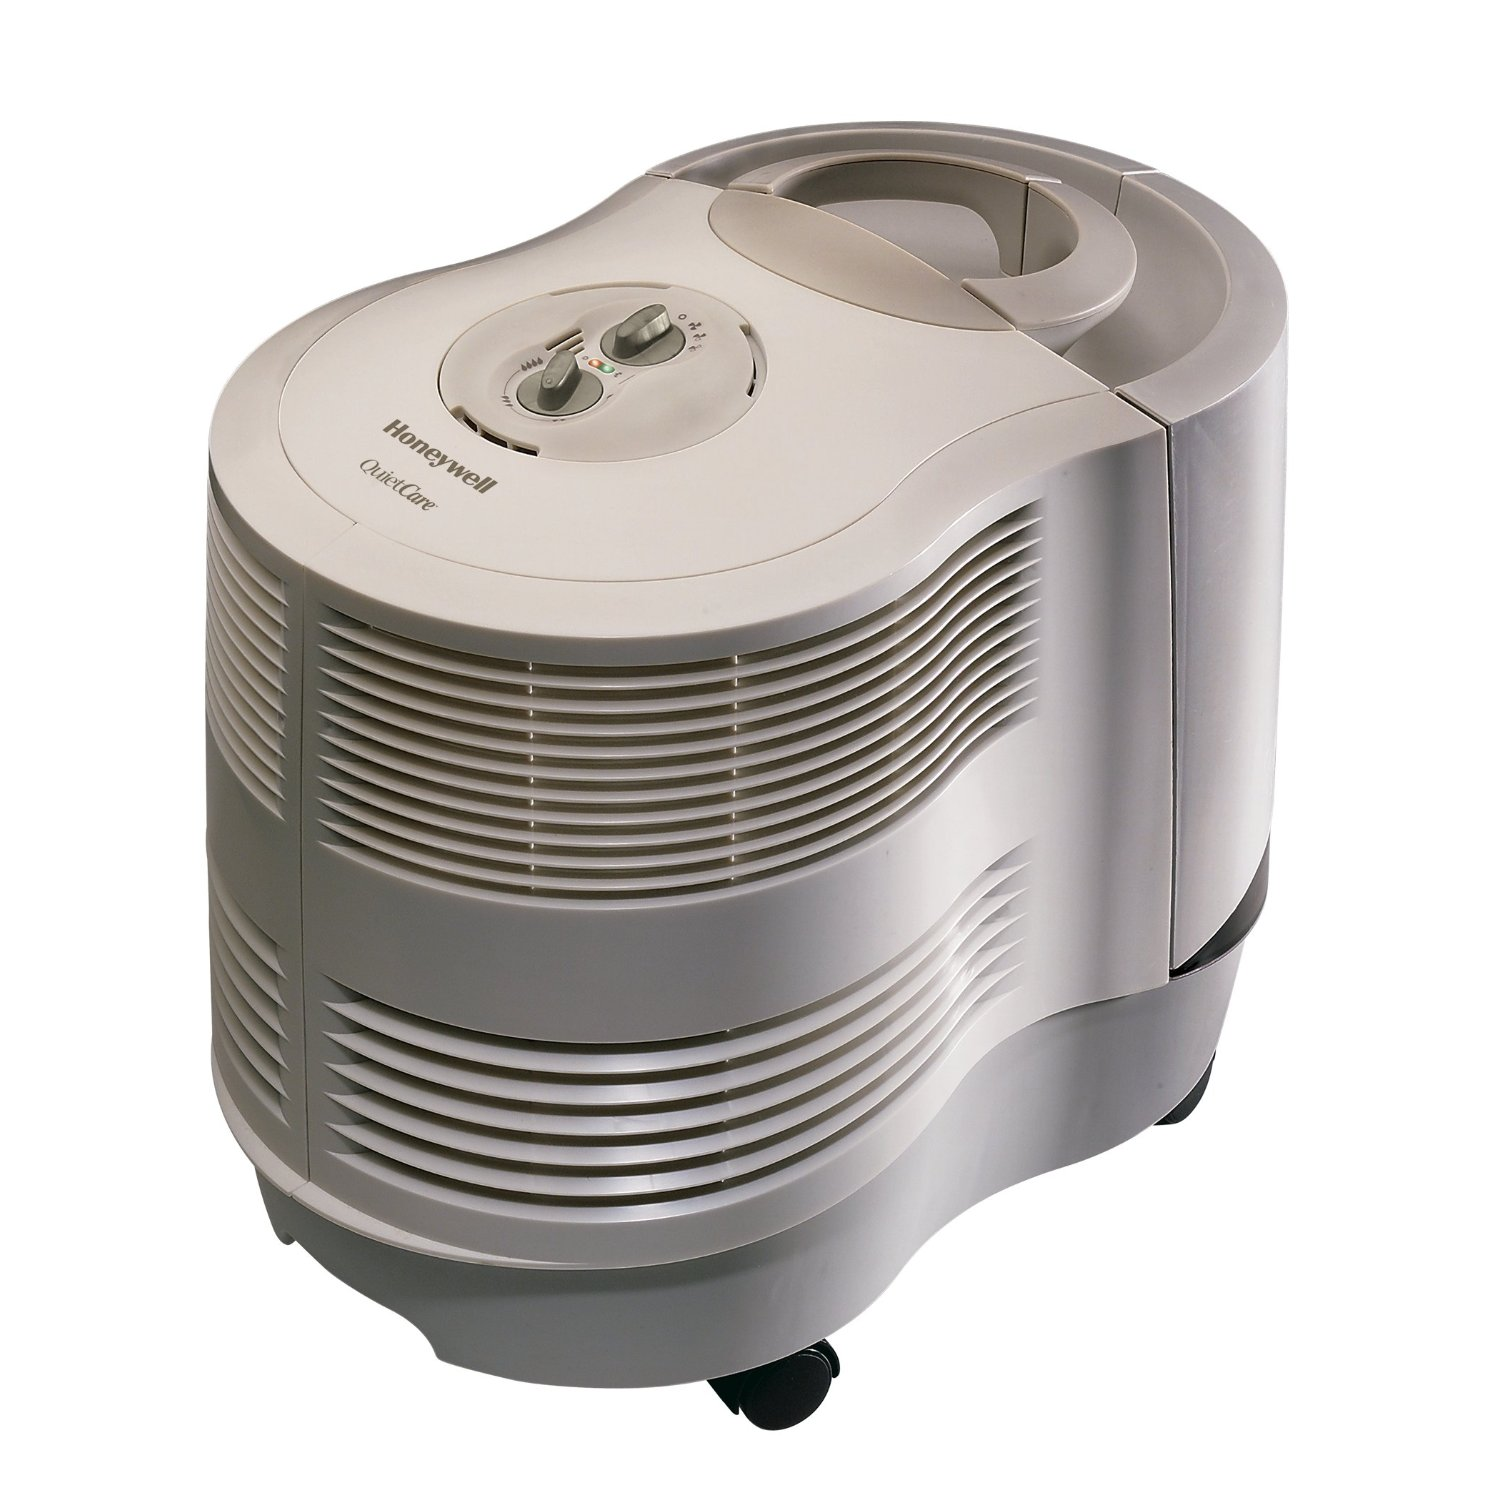 Honeywell Humidifier  Best Humidifier? #3B382D